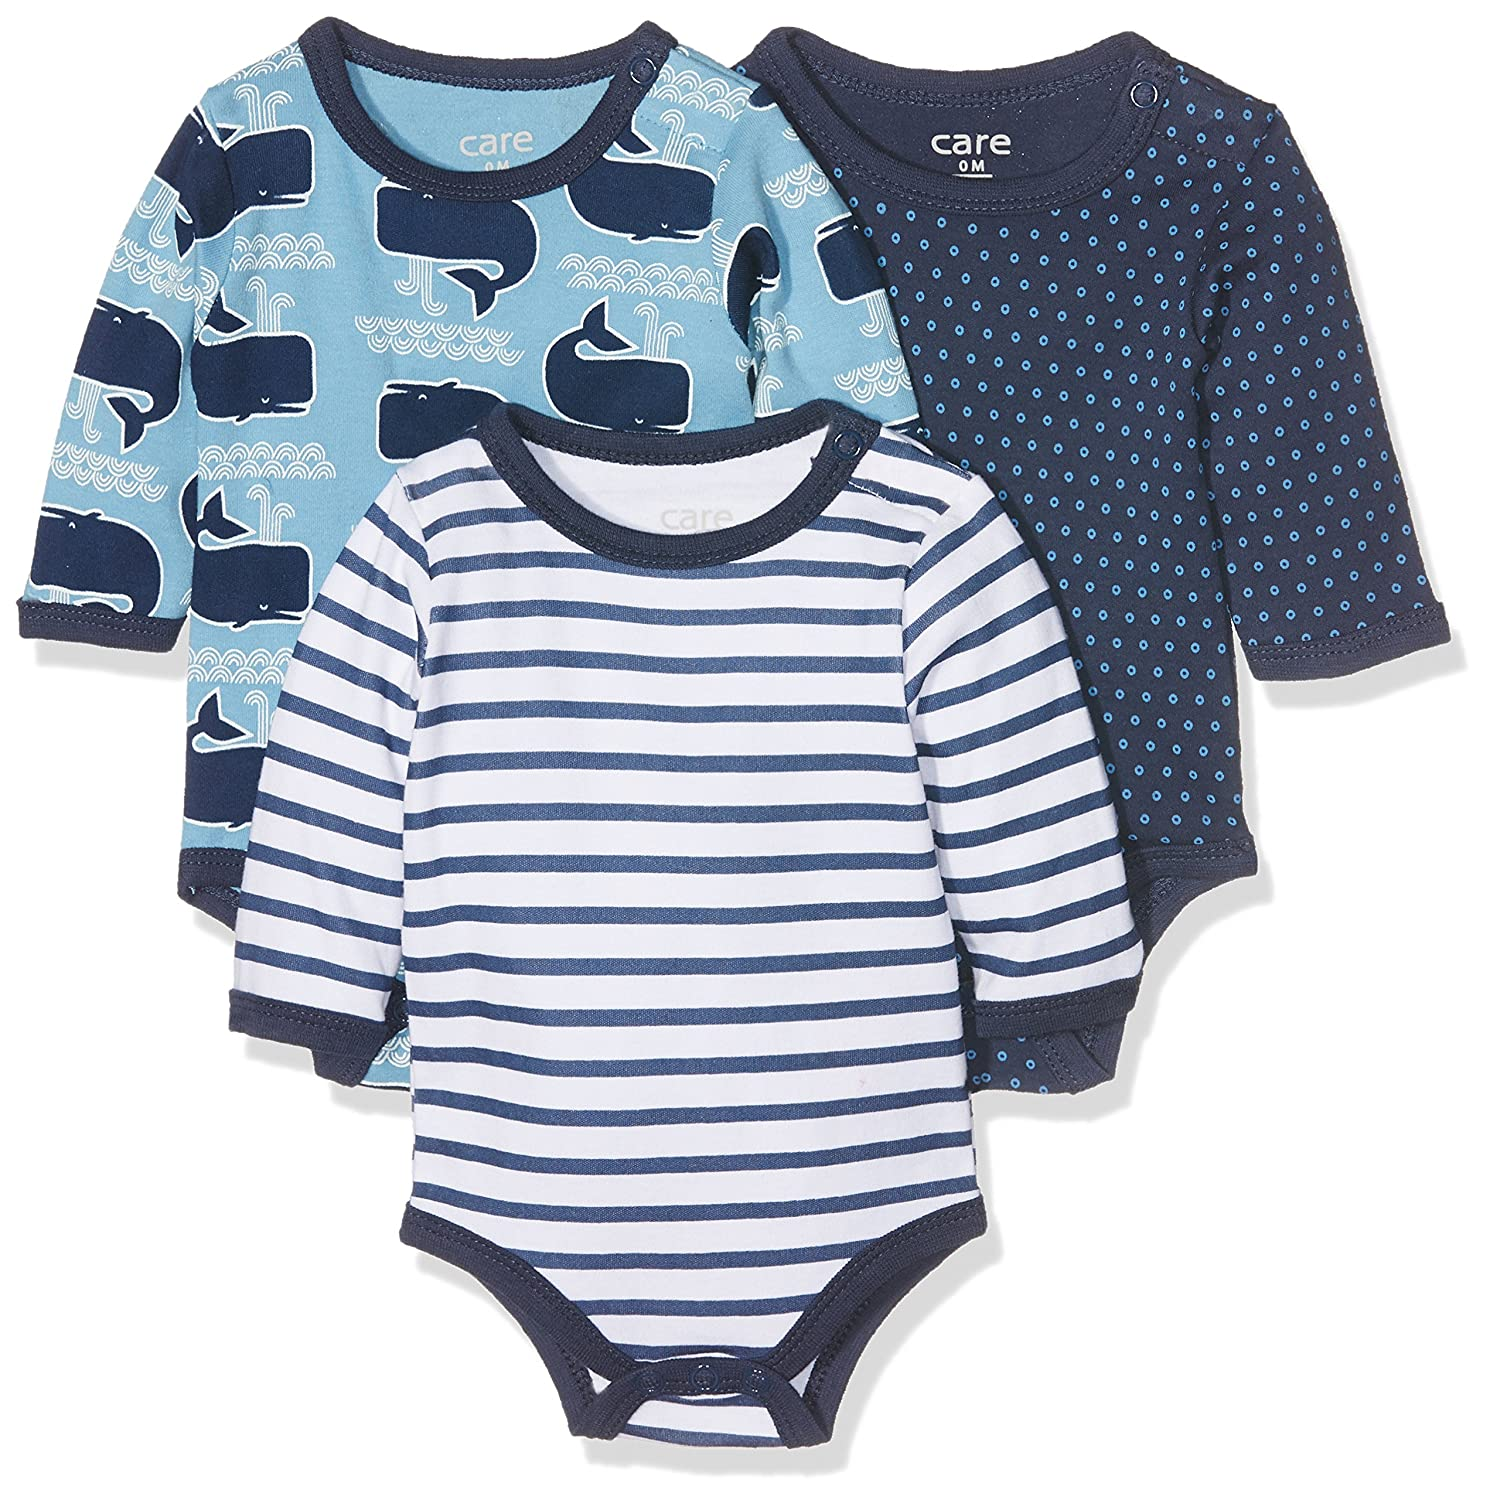 Care Baby - Jungen Langarm-Body im 3er Pack Brands 4 Kids A/S 4132